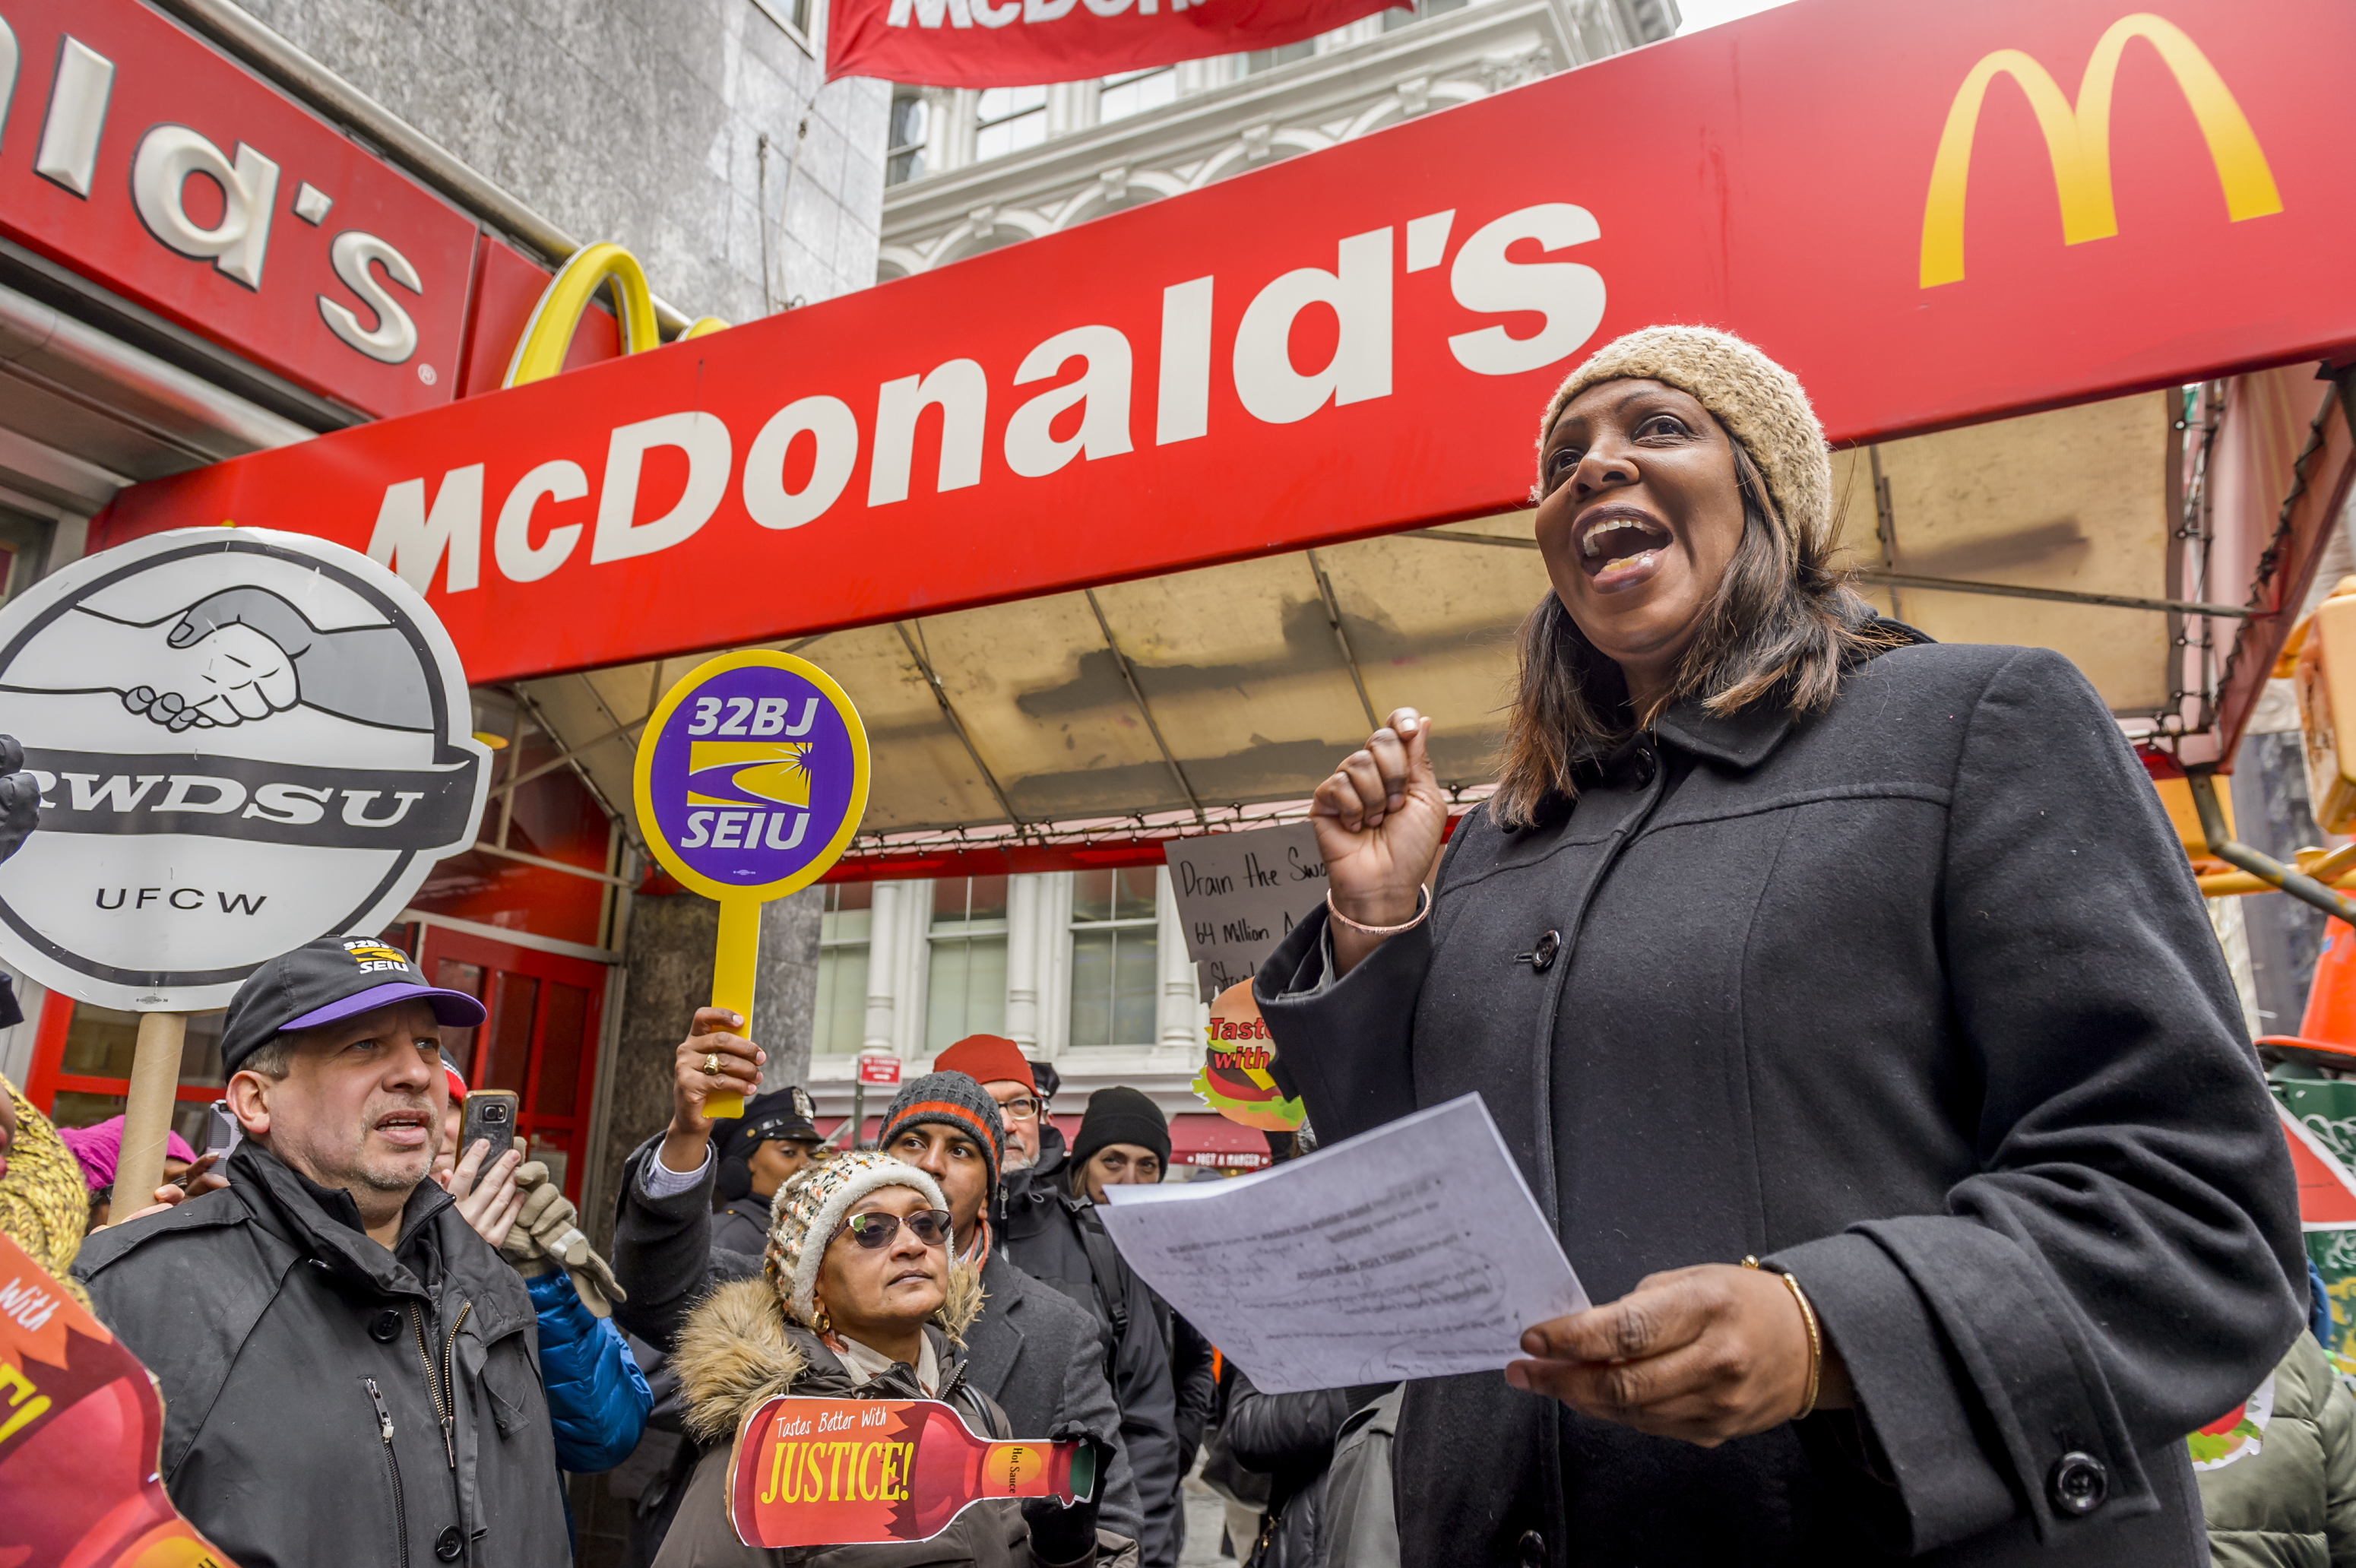 NYC Public Advocate Letitia James during the protest. Days